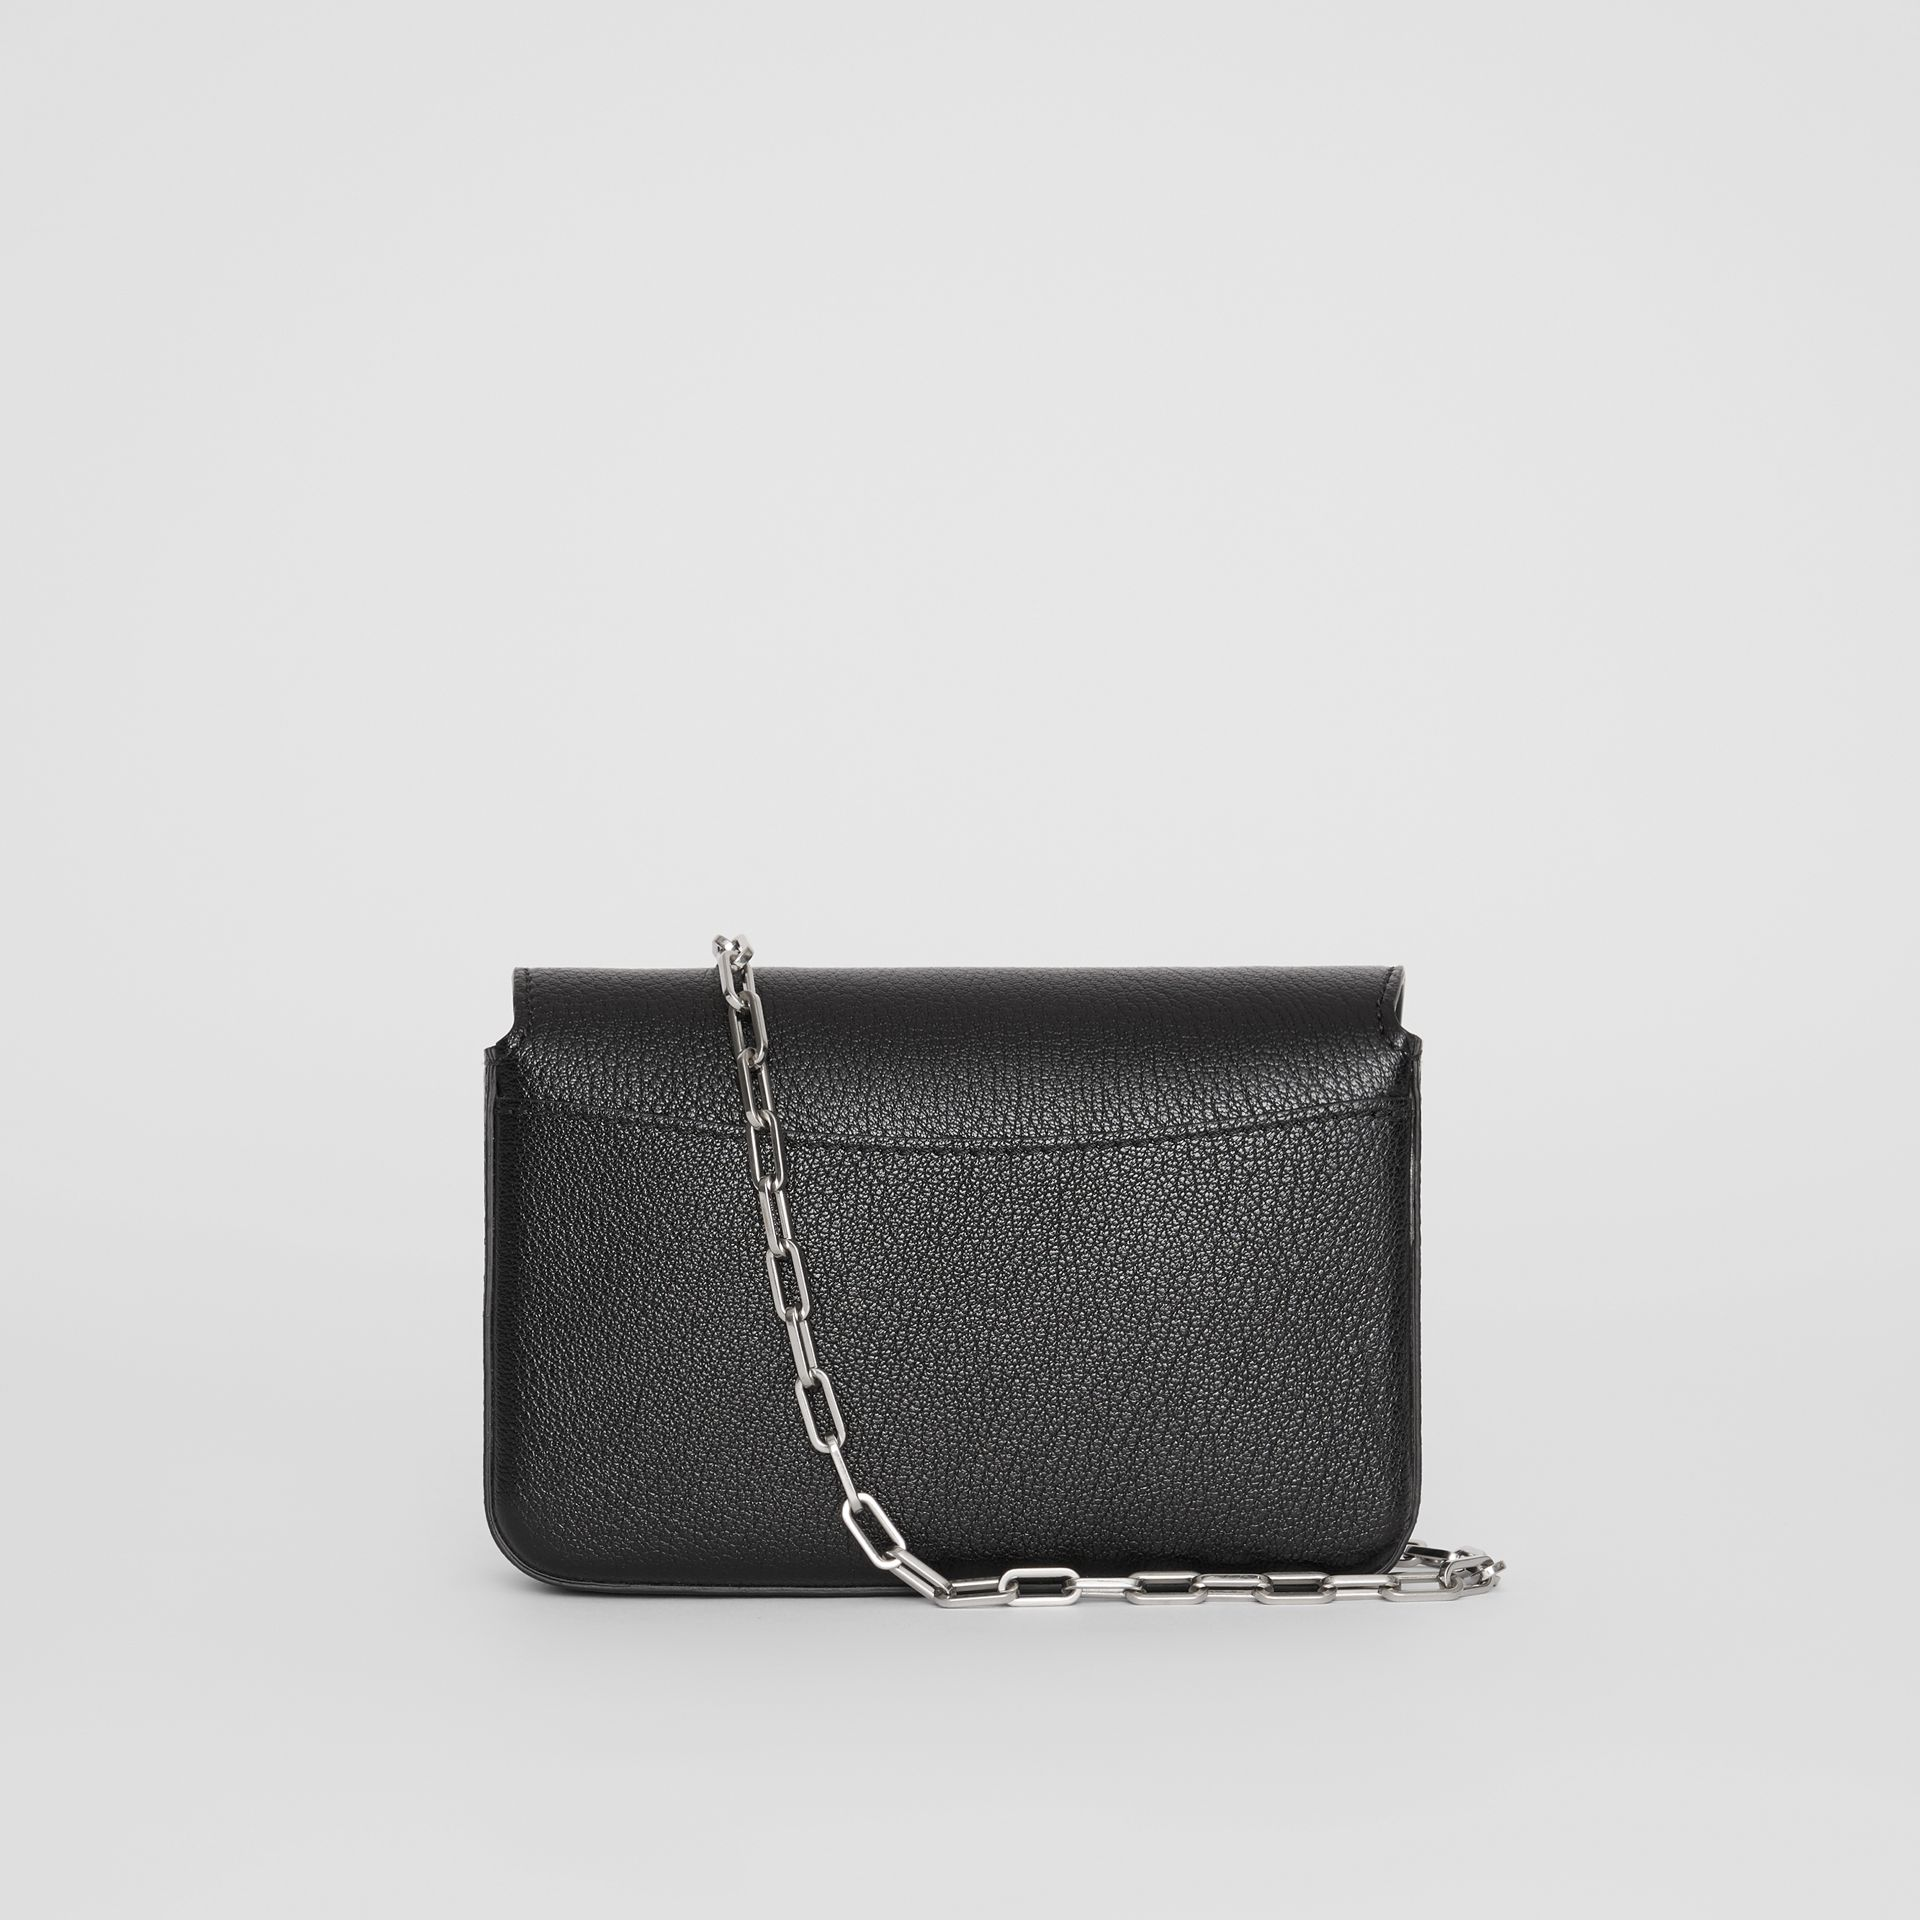 Mini sac The D-ring en cuir (Noir) - Femme | Burberry Canada - photo de la galerie 7